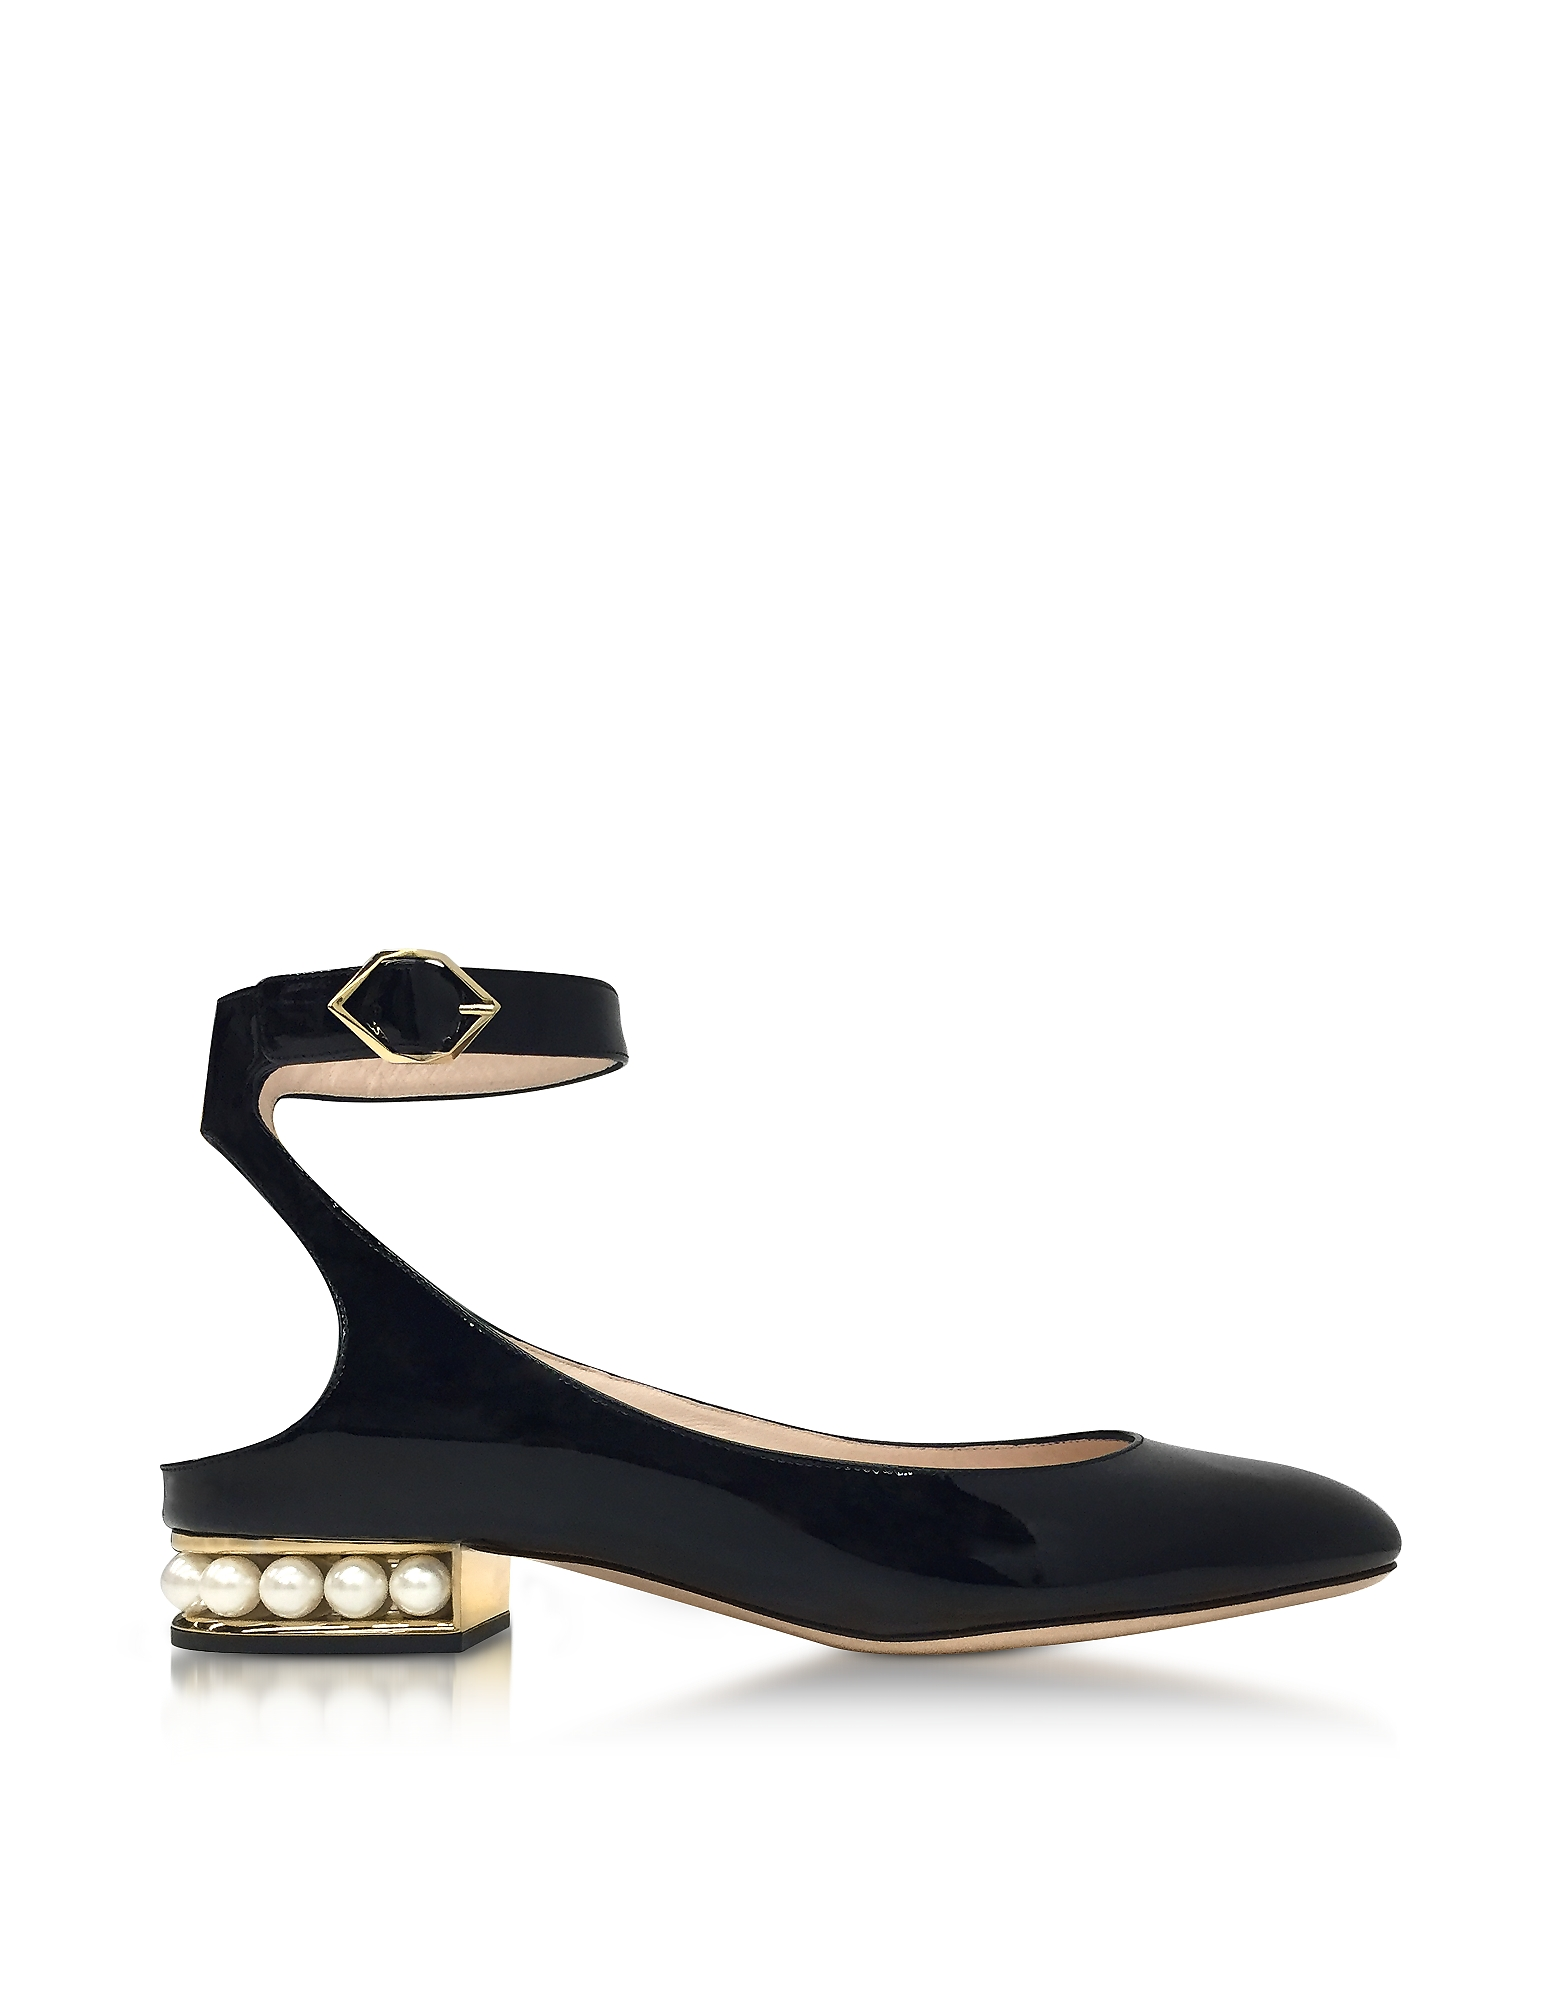 Nicholas Kirkwood Shoes, Lola Black Patent Leather Pearl Ballerina